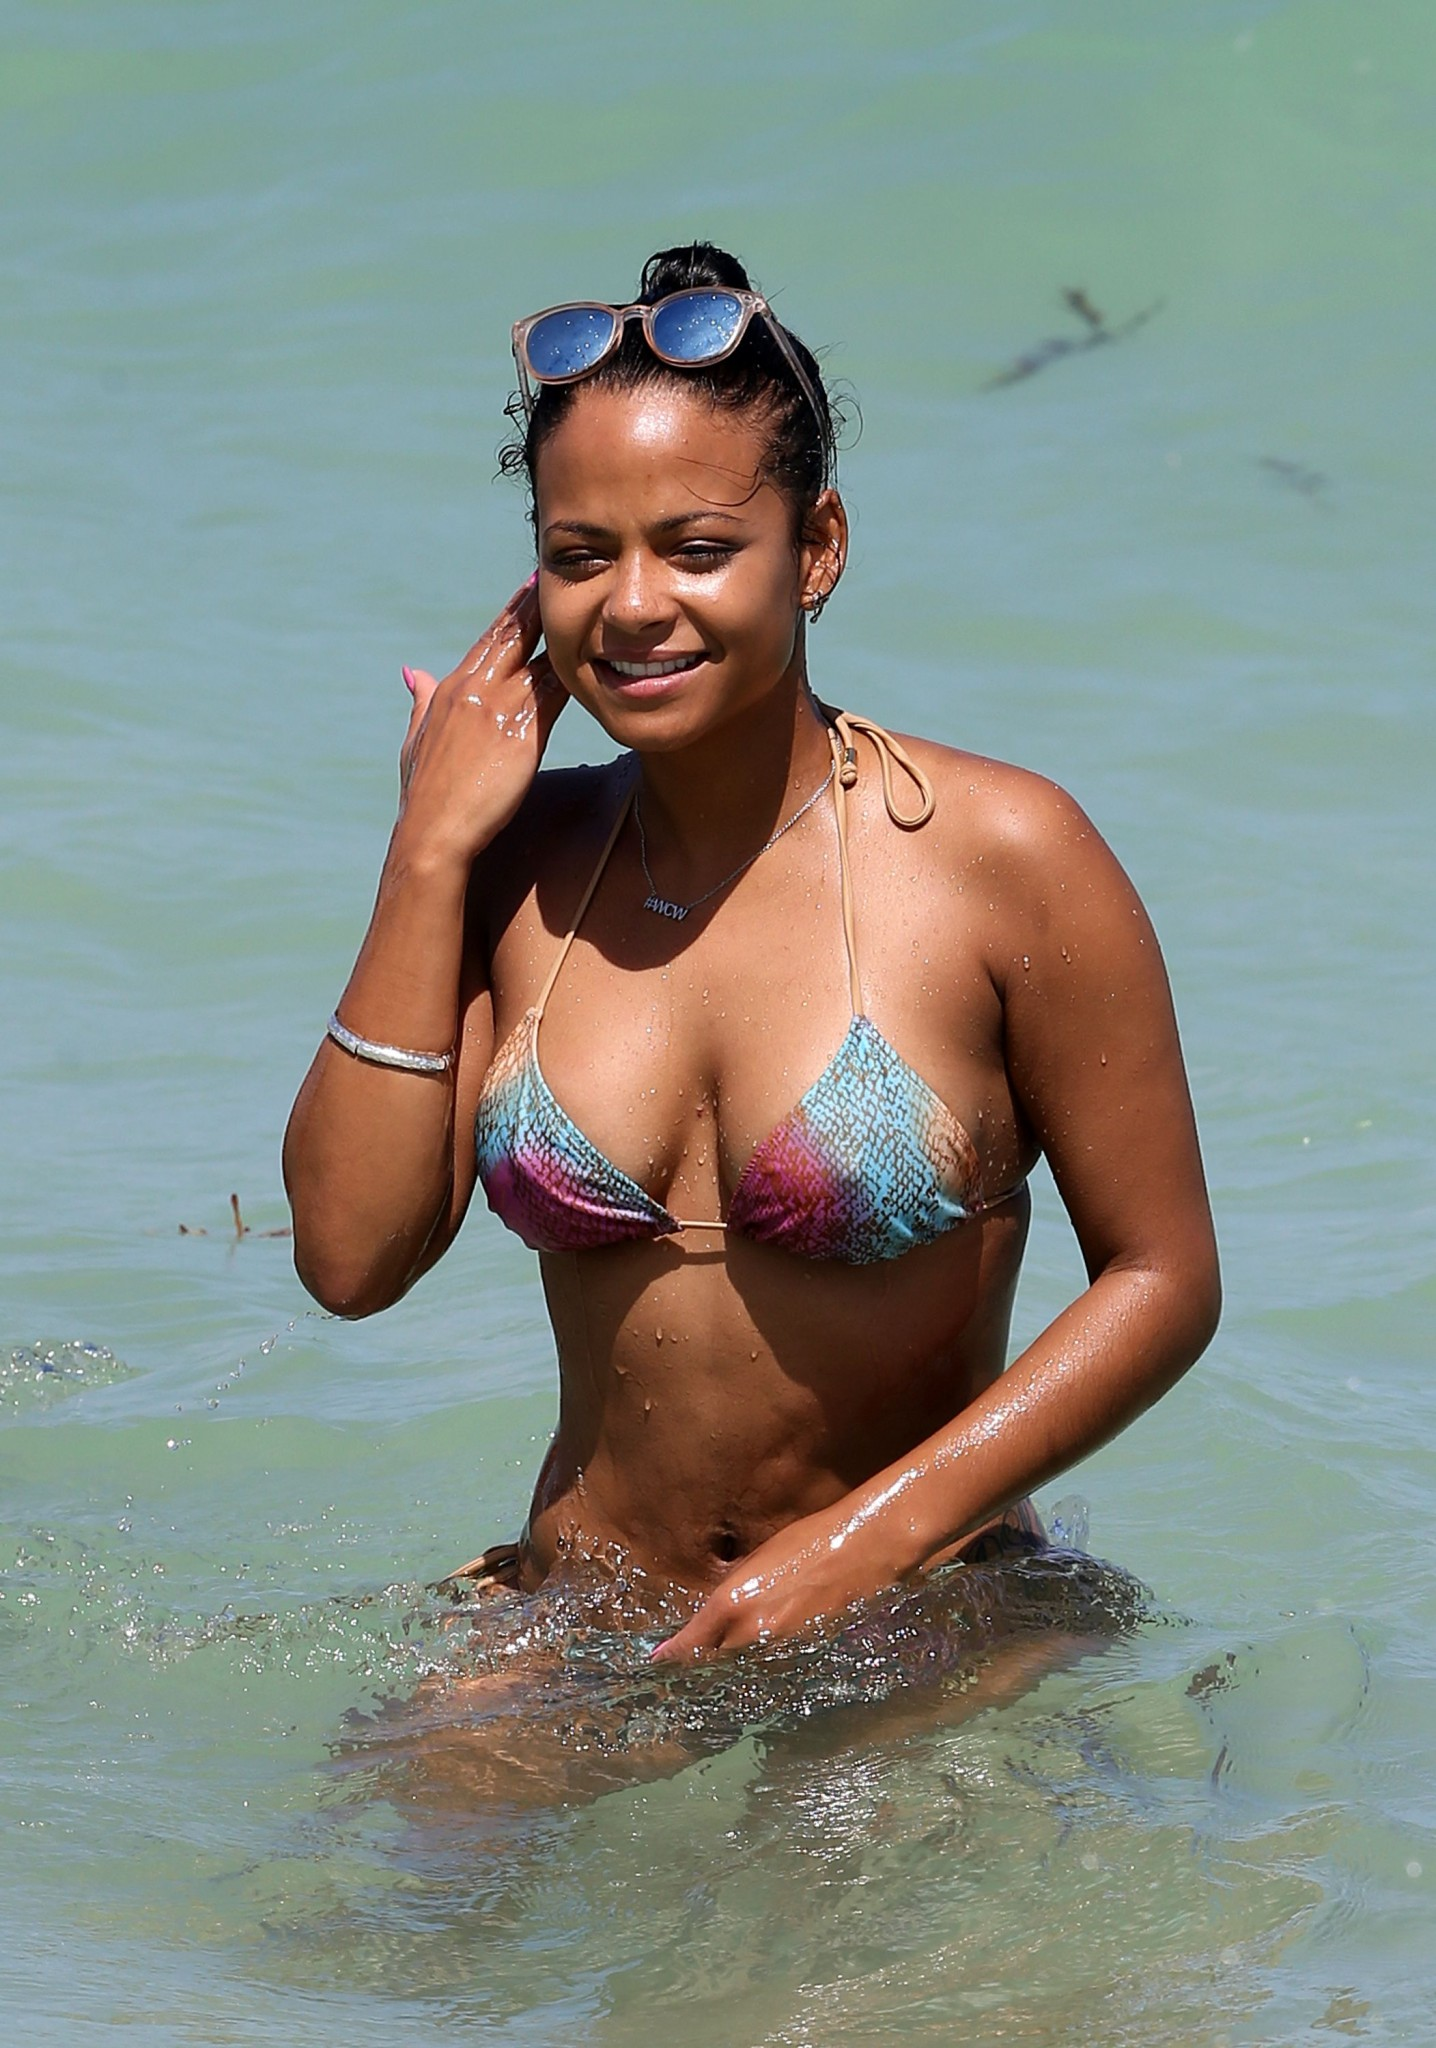 christina-milian-bikini-pictures-in-miami-10